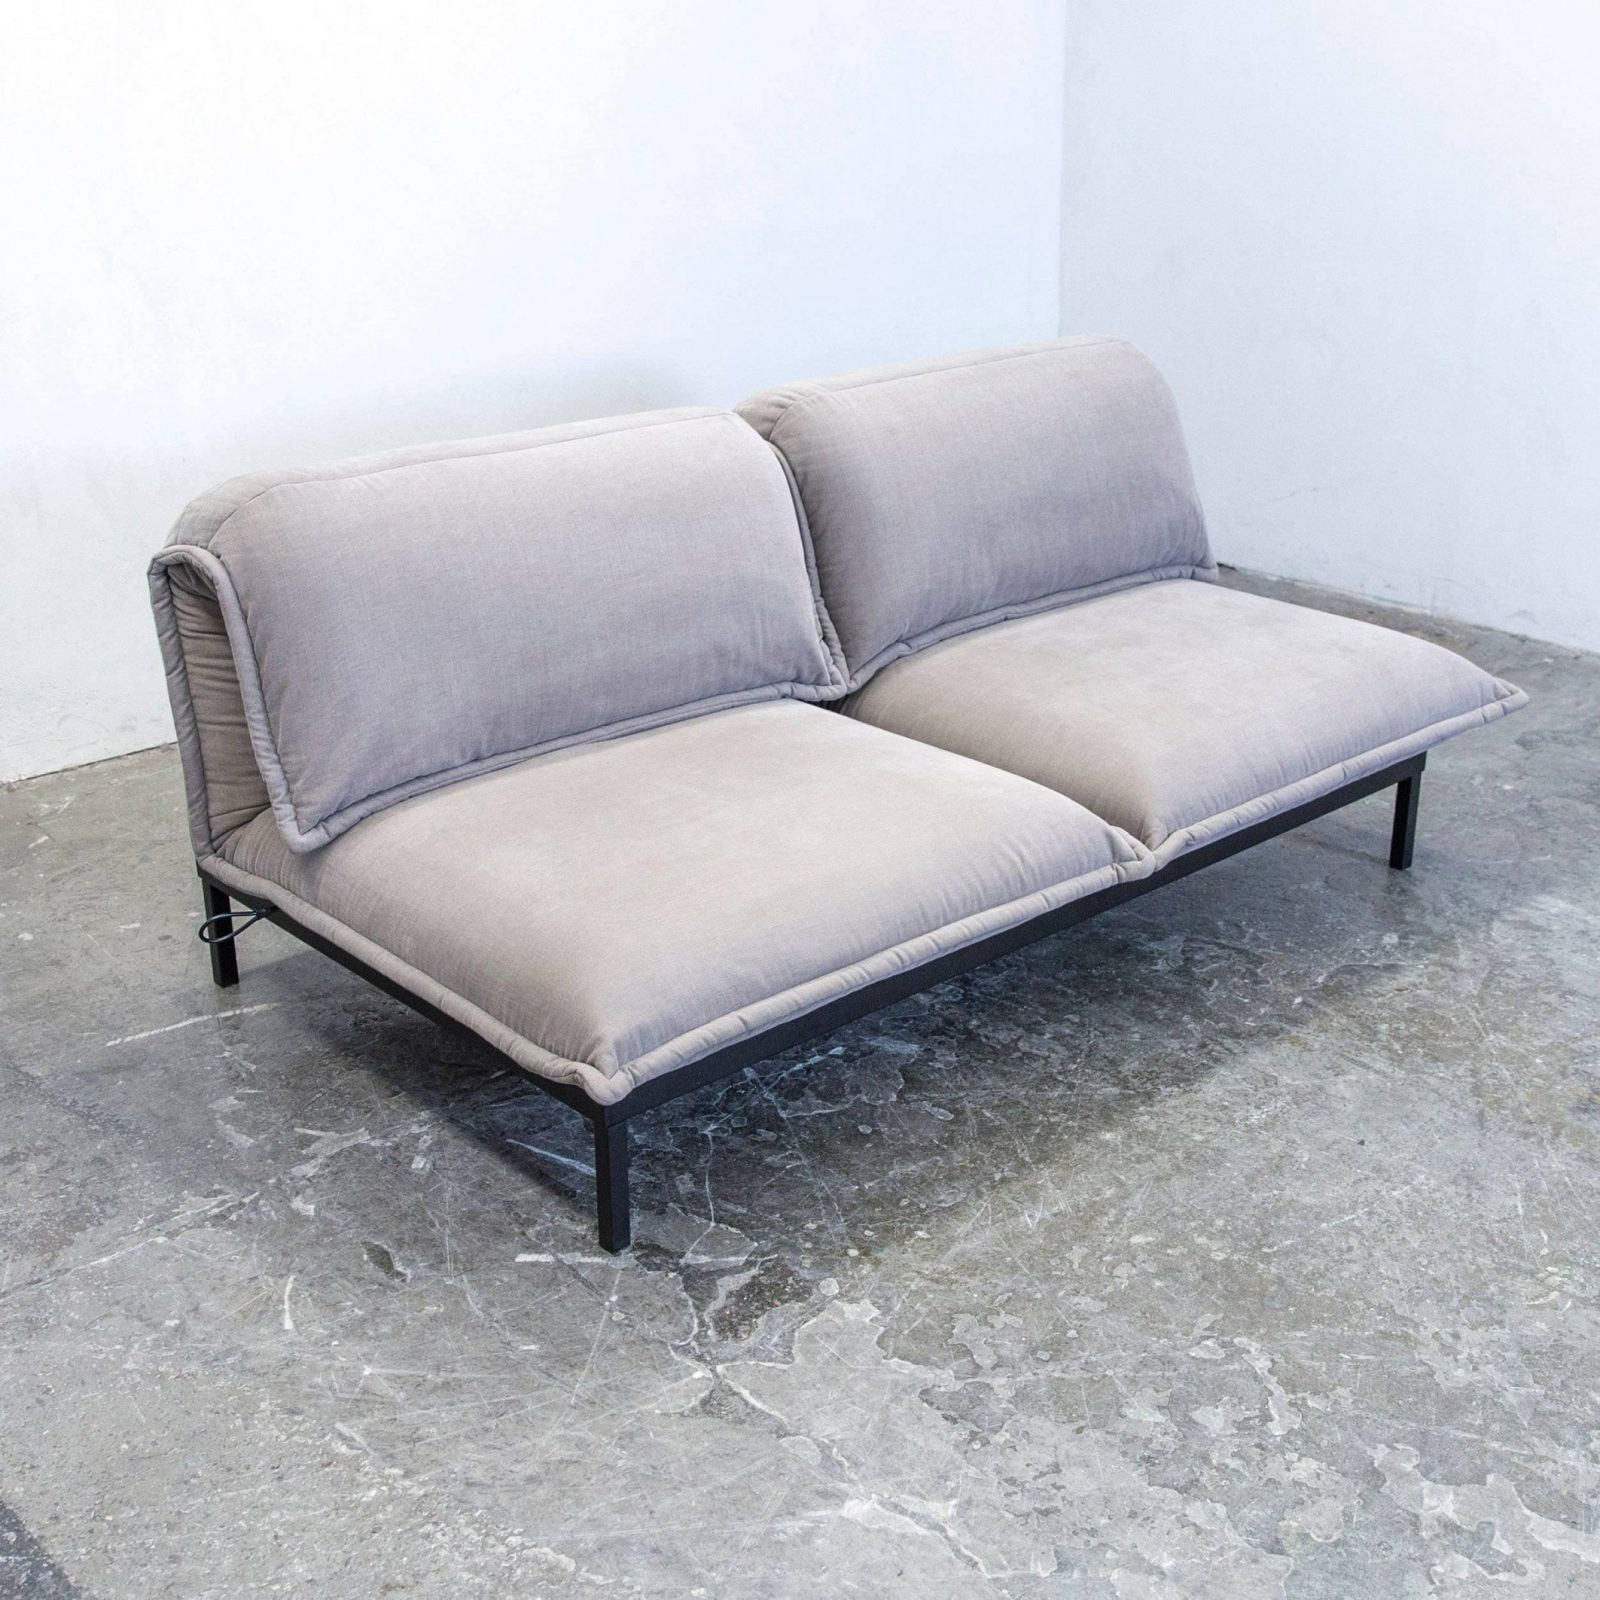 Rolf Benz Nova Designer Sofa Grey Fabric Twoseat Function Couch von Rolf Benz Sofa Nova Photo